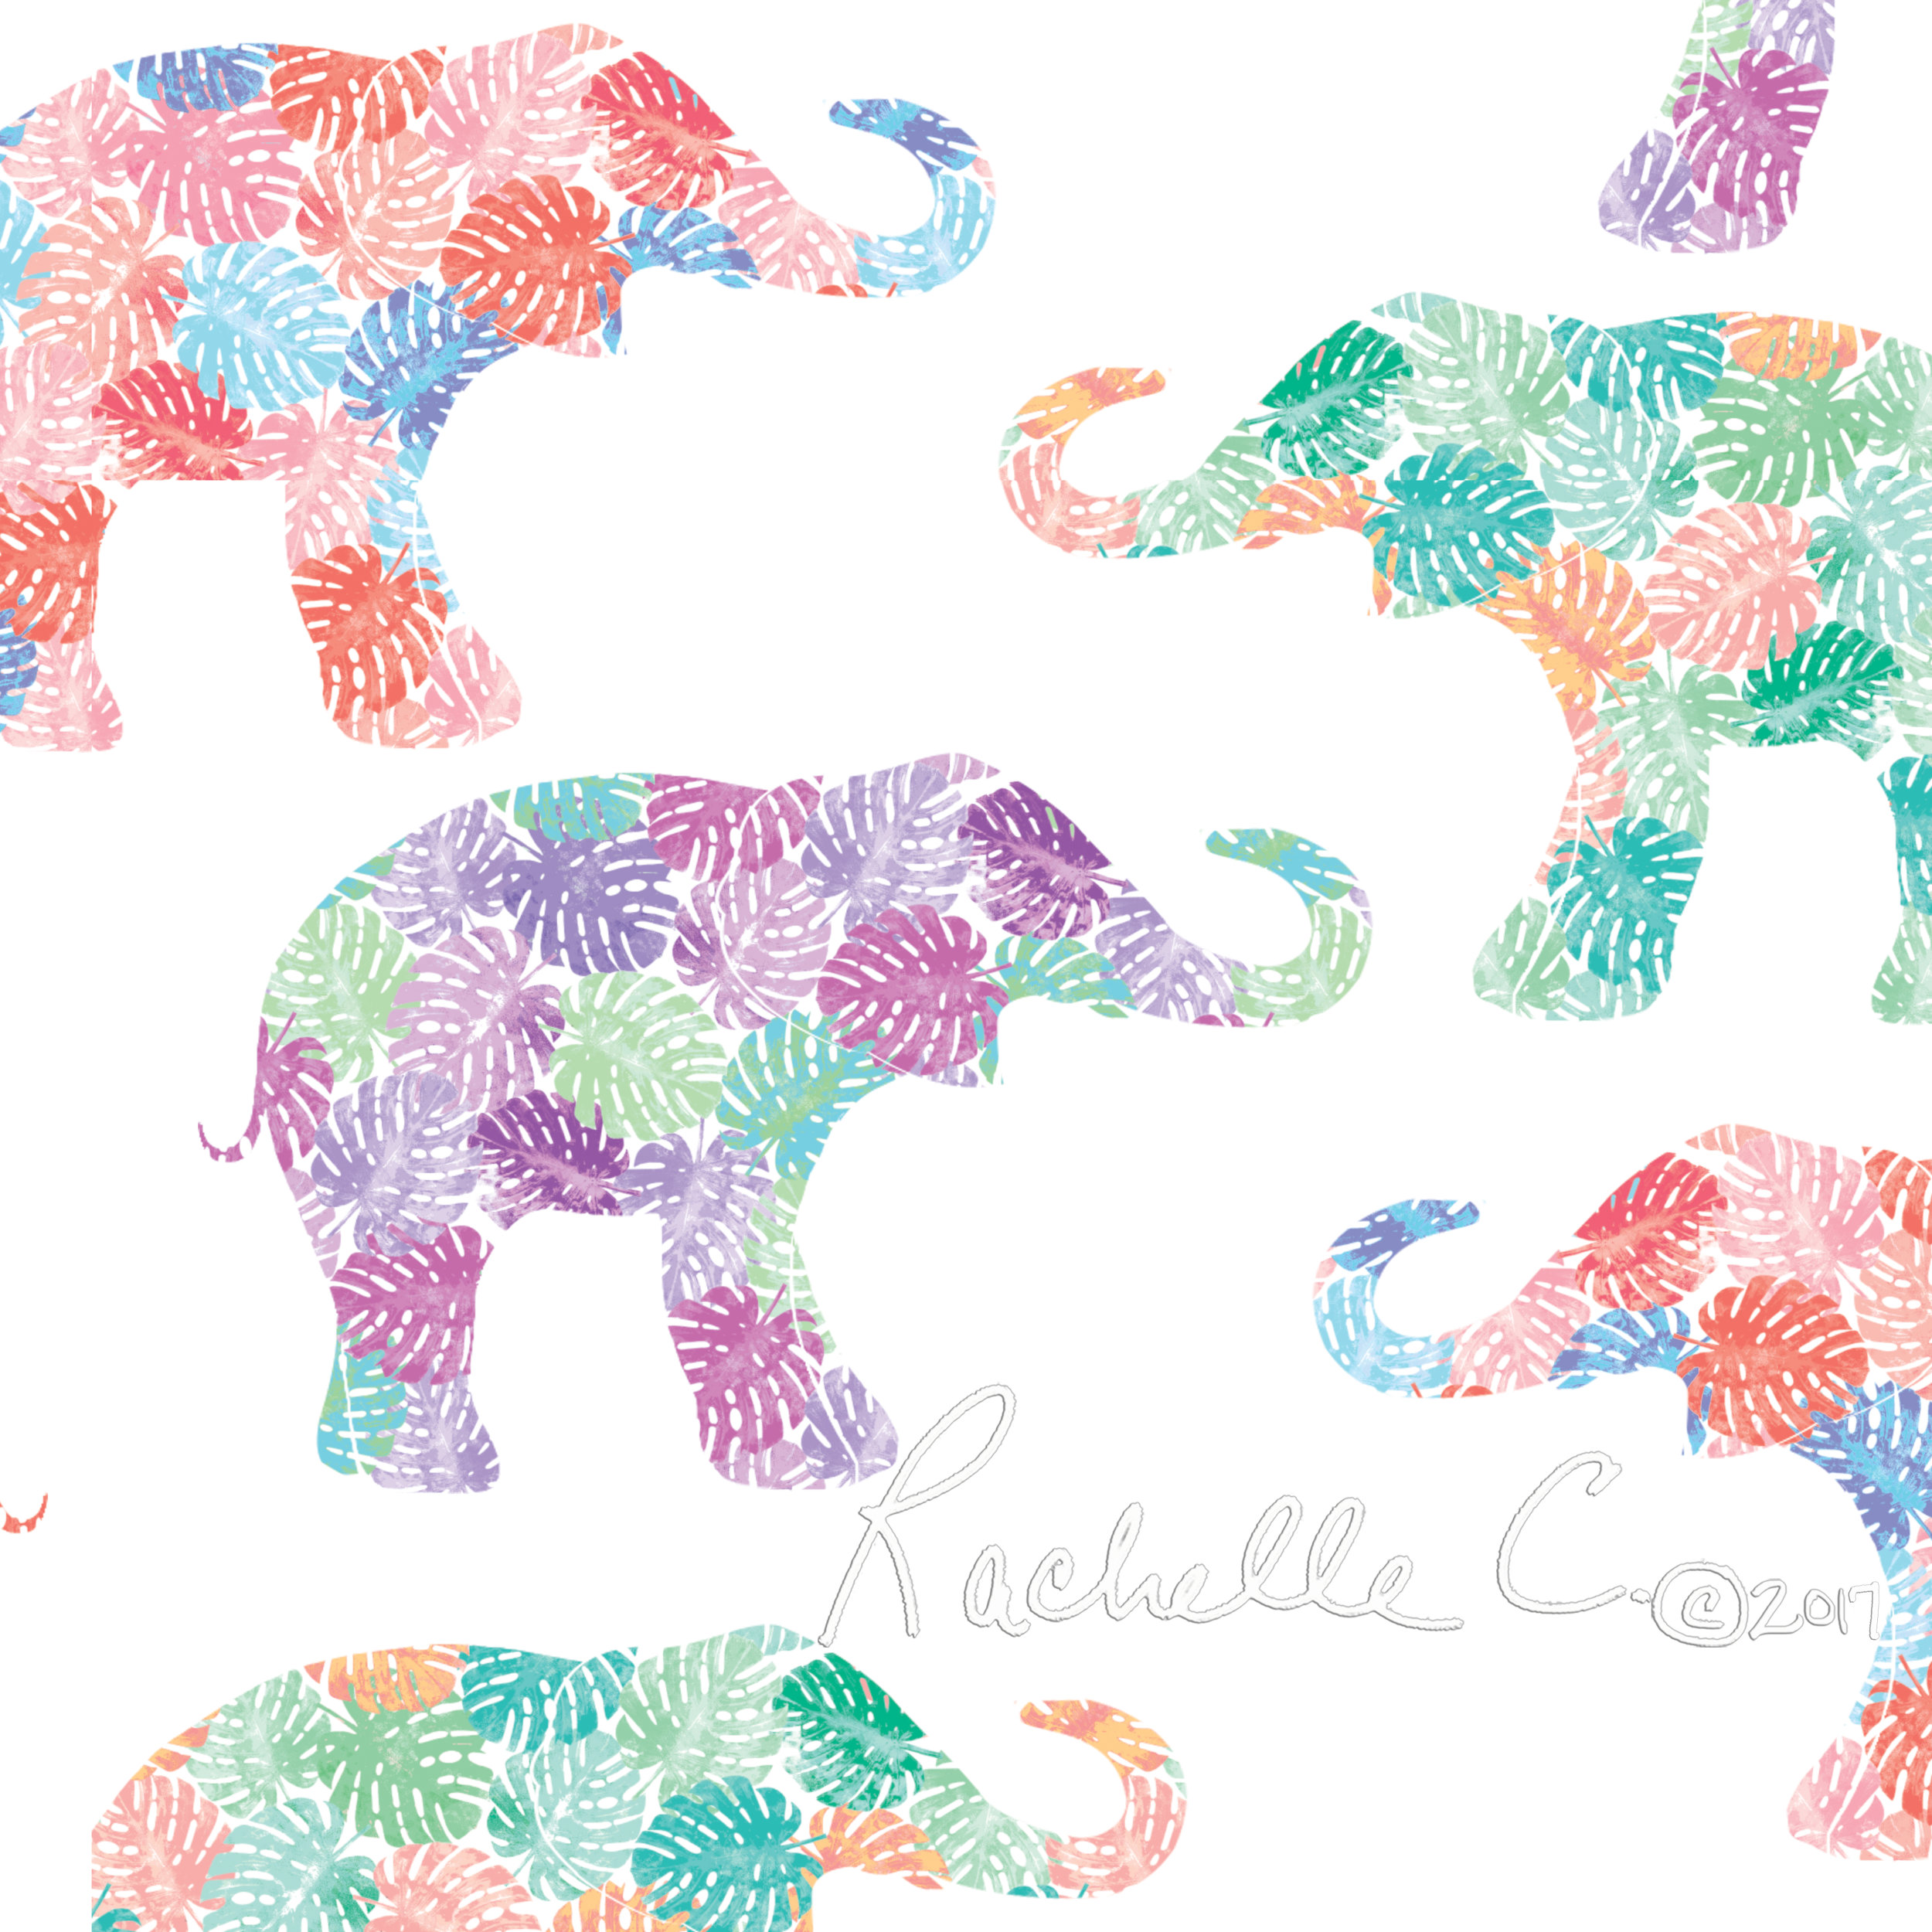 """Elephant Magic"" original print by Rachelle Caliolio Design  copyright 2019. All rights reserved."